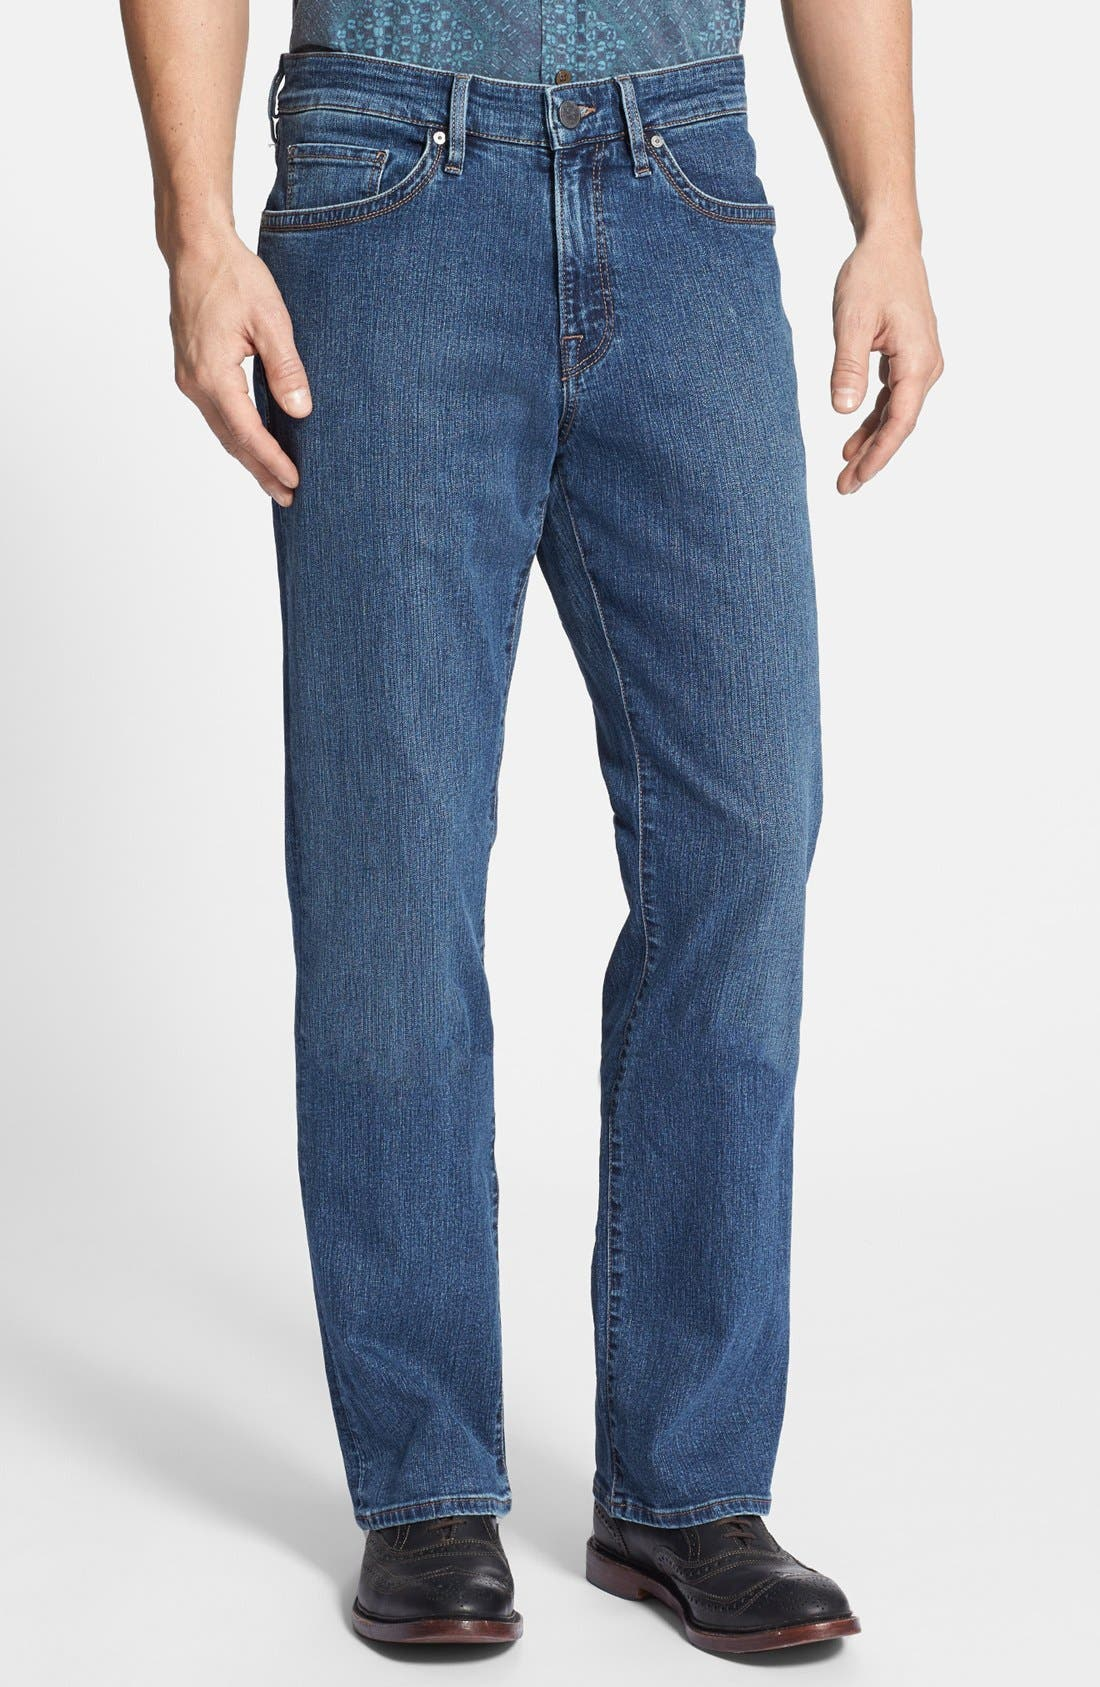 Main Image - 34 Heritage Charisma Classic Relaxed Fit Jeans (Mid Comfort) (Regular & Tall)